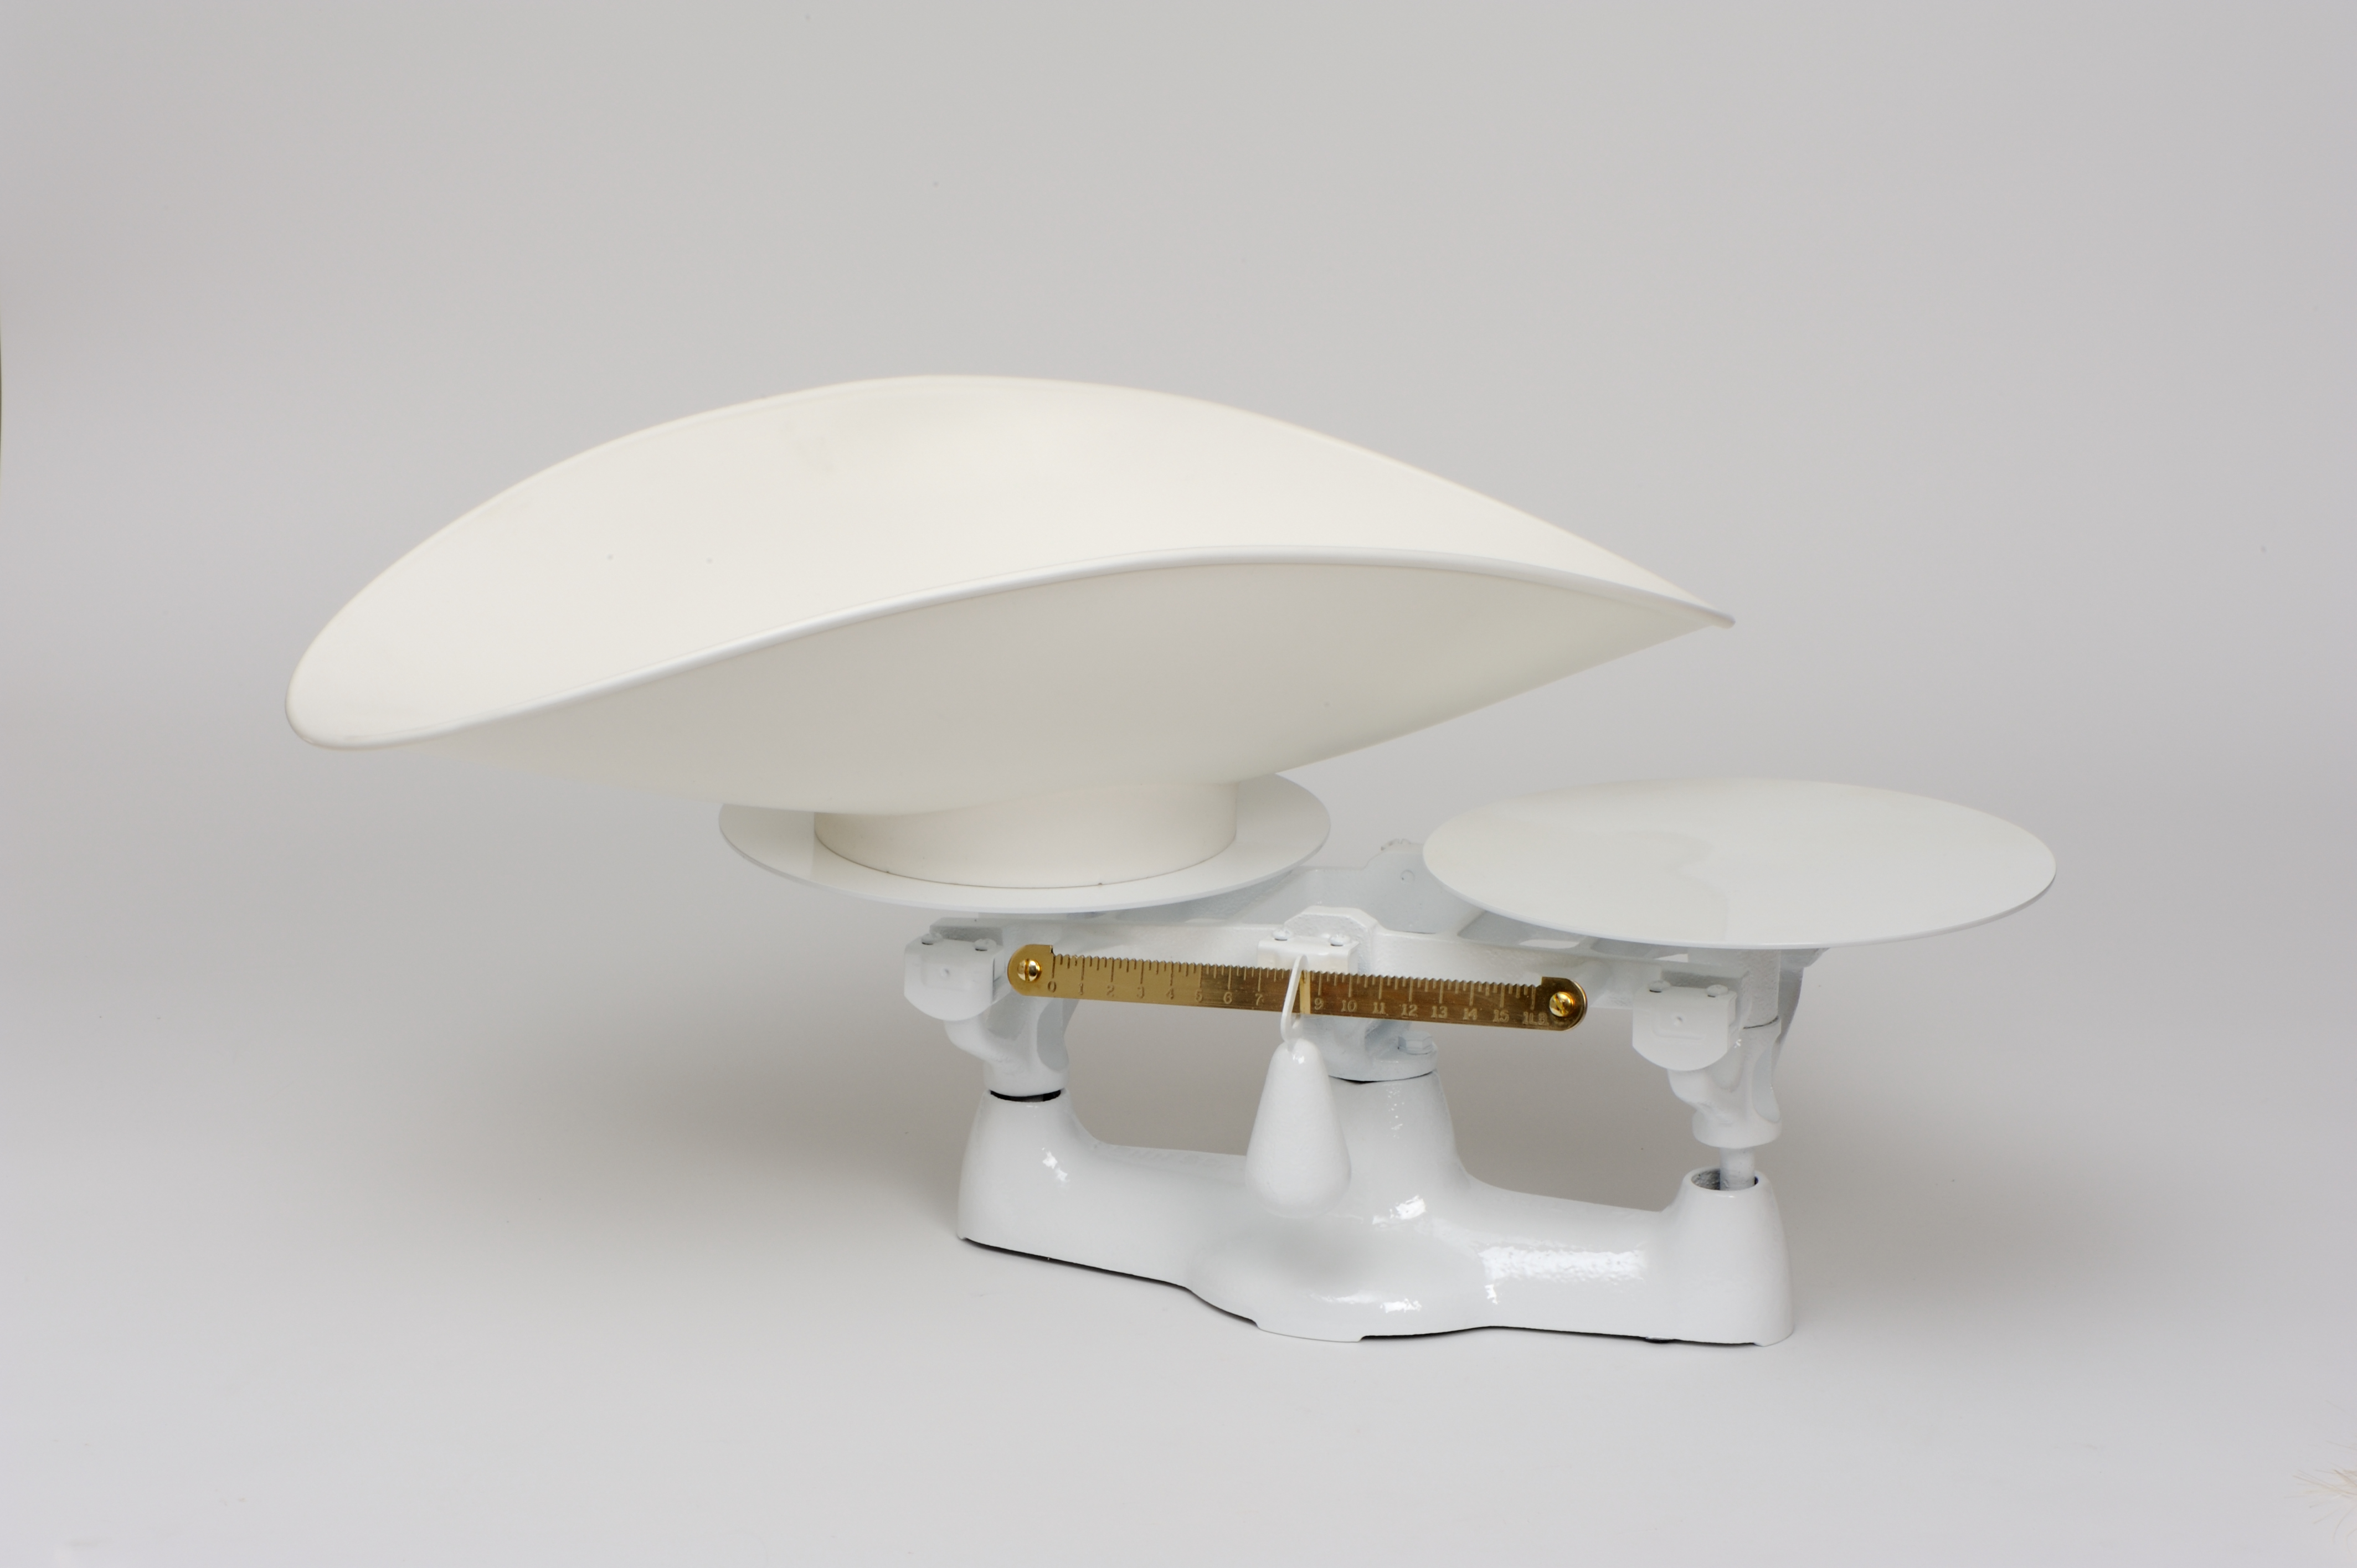 Penn Scale 1402 P 8 Pound Bakers Scale with Plastic Scoop